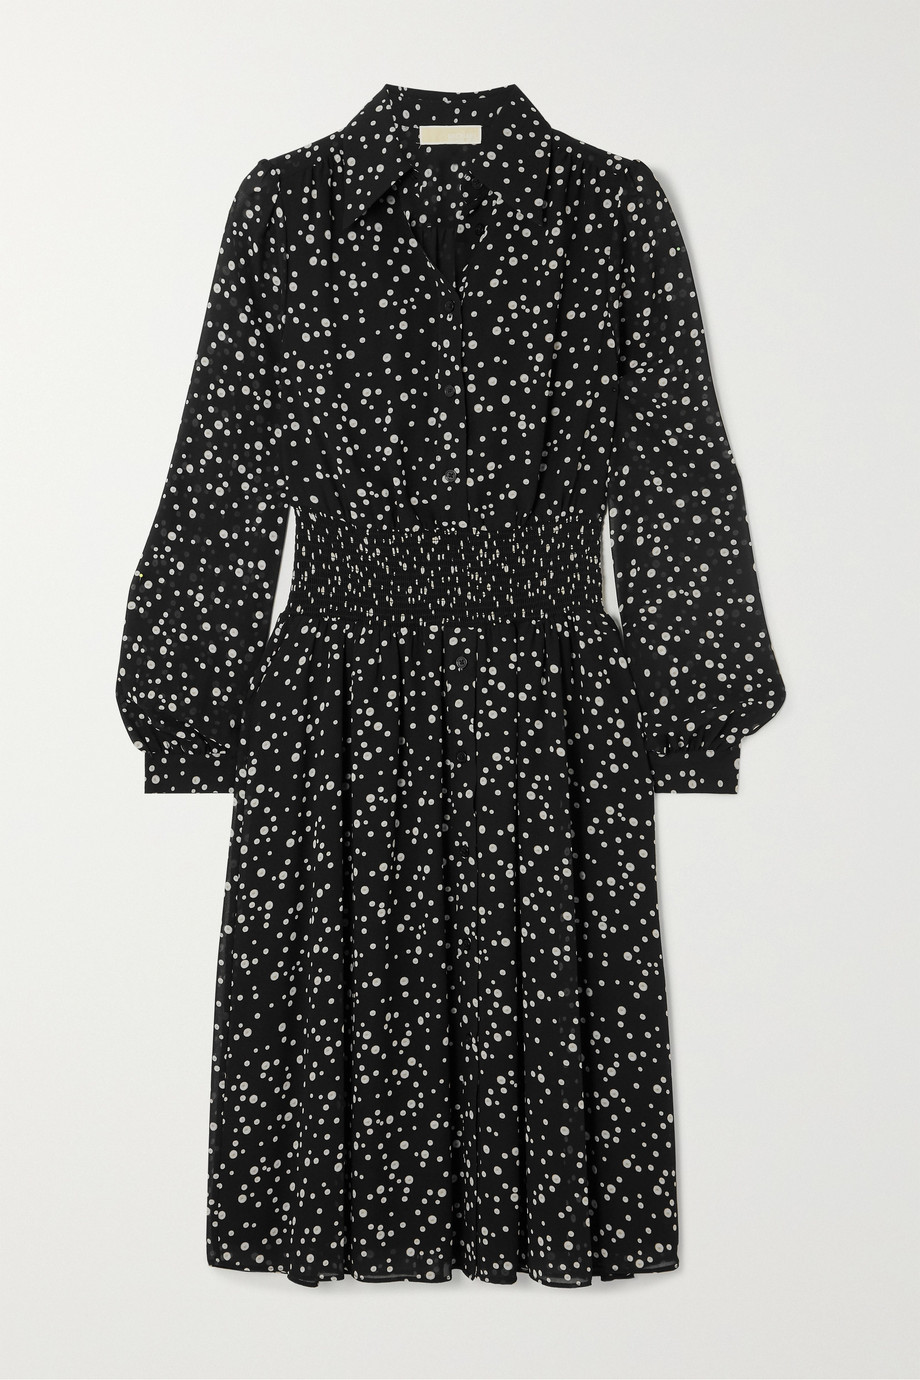 MICHAEL Michael Kors Shirred polka-dot georgette dress